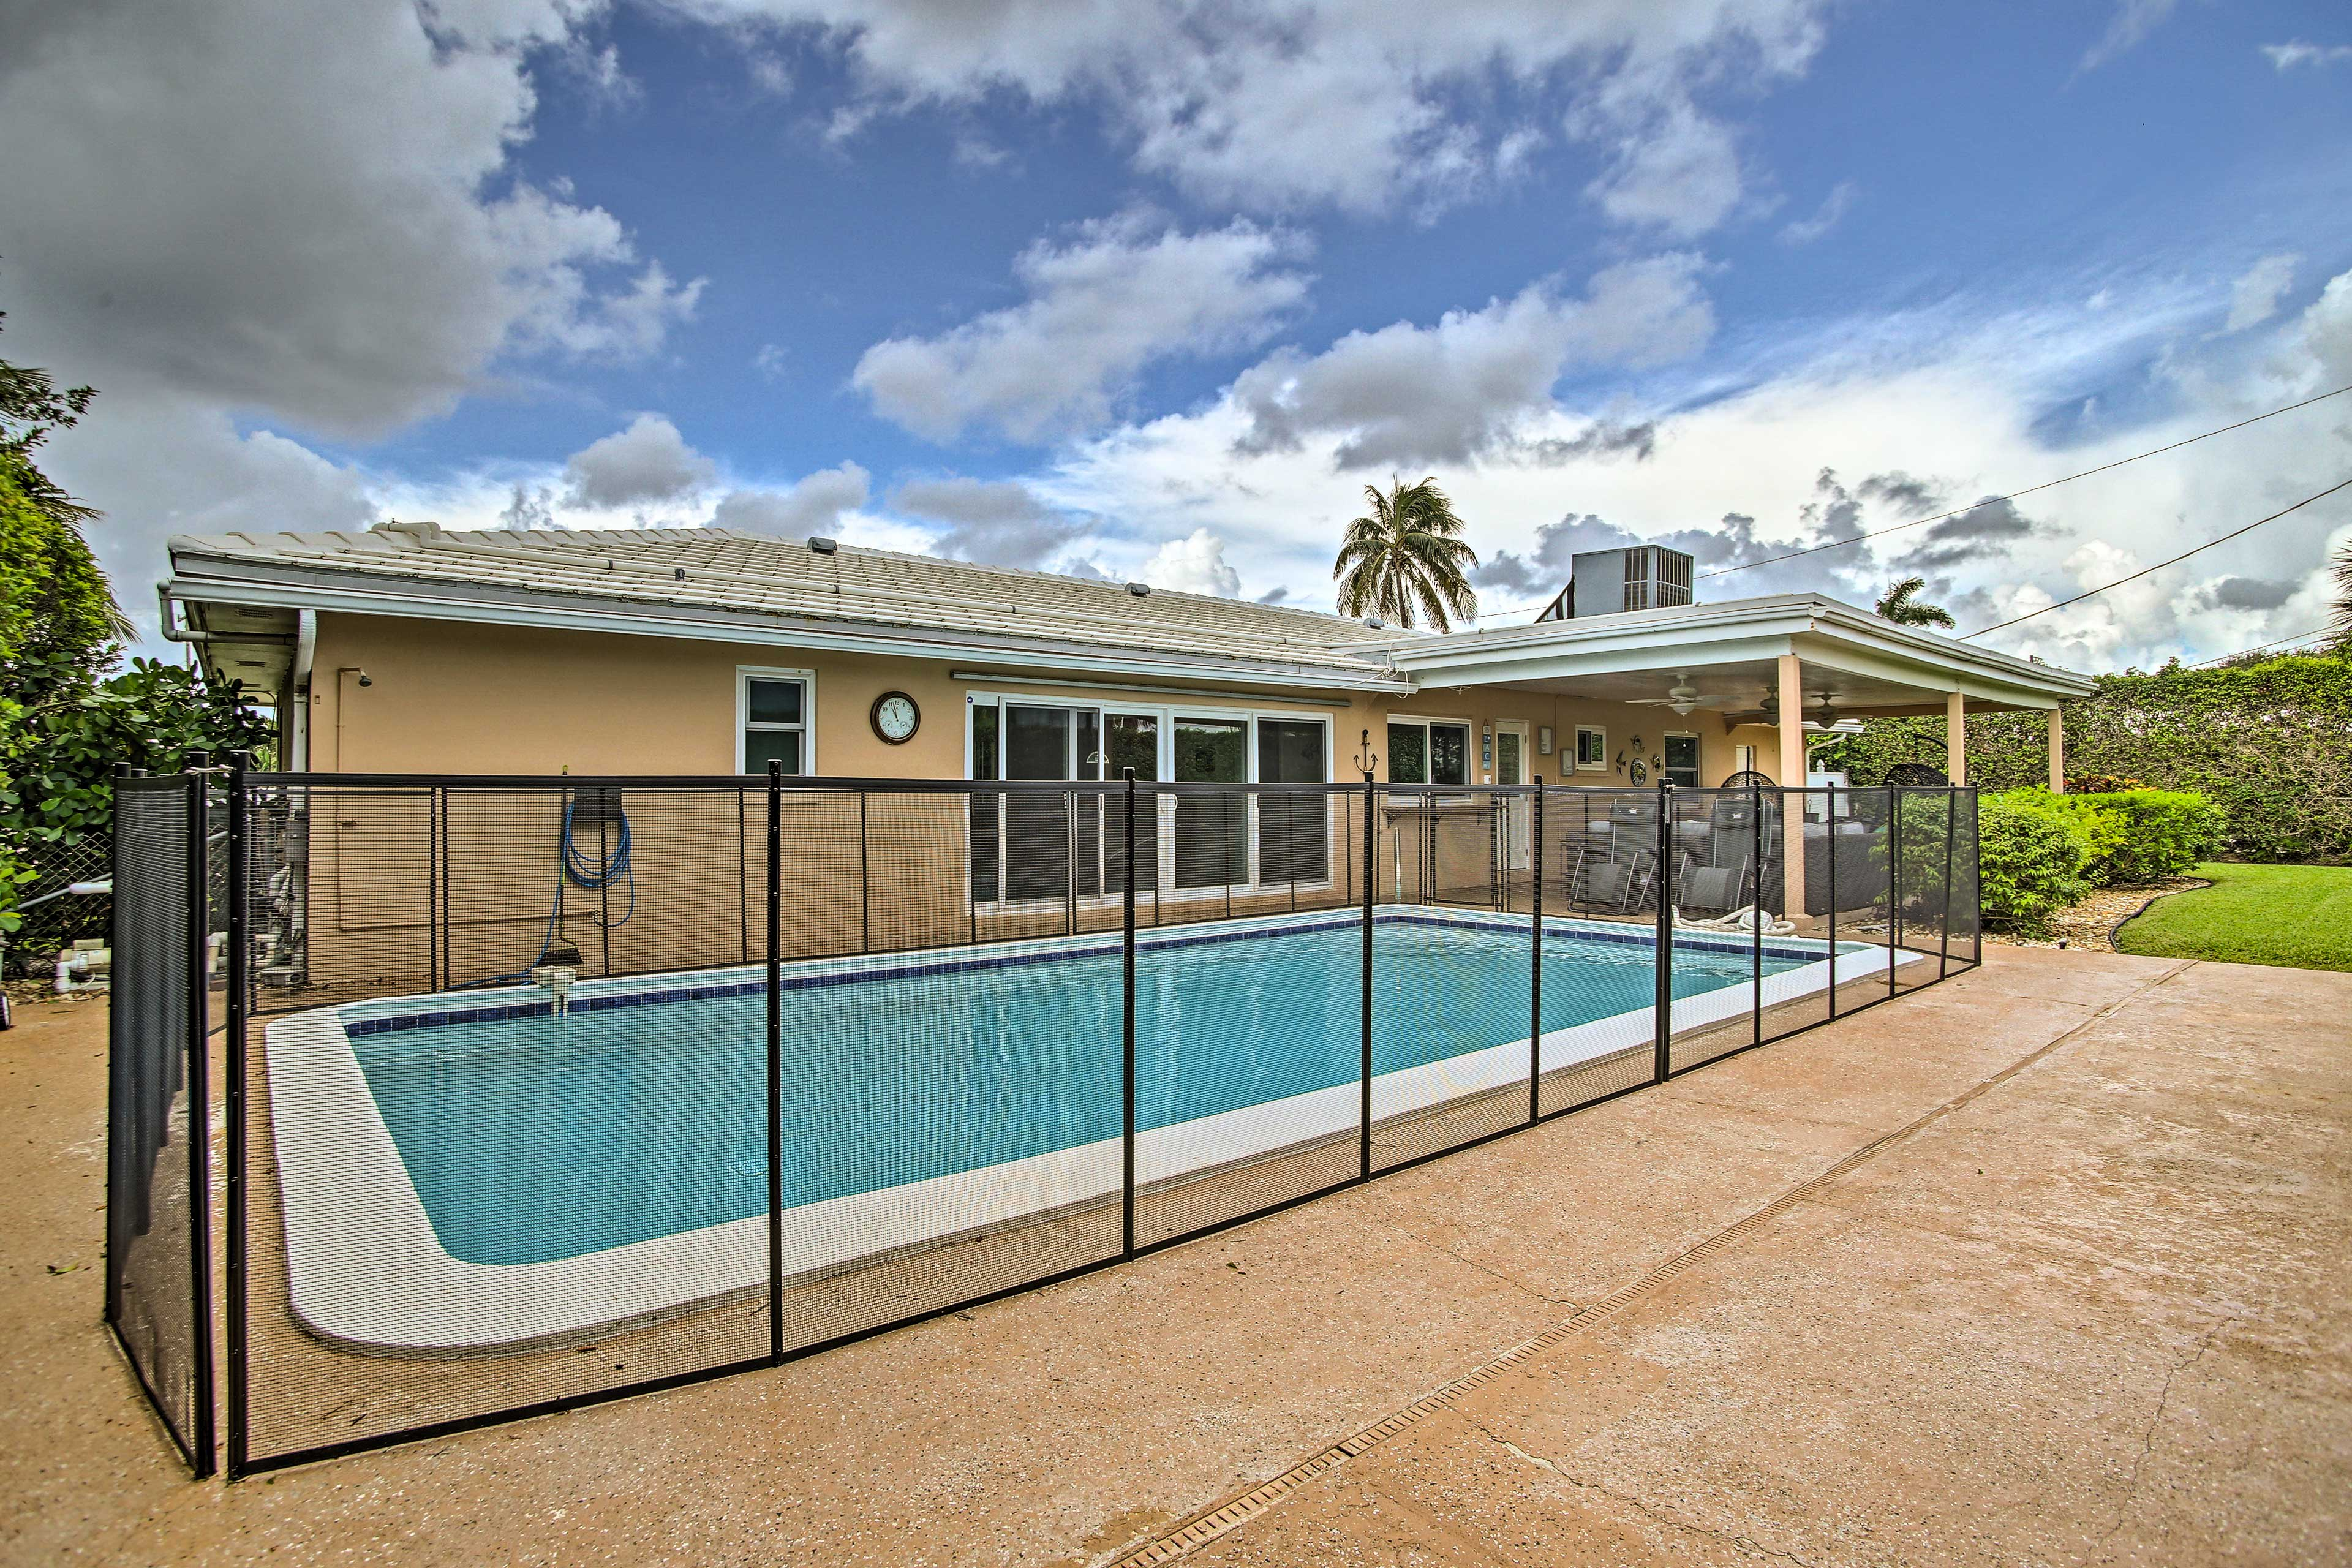 This vacation rental home has a private, heated saltwater pool!